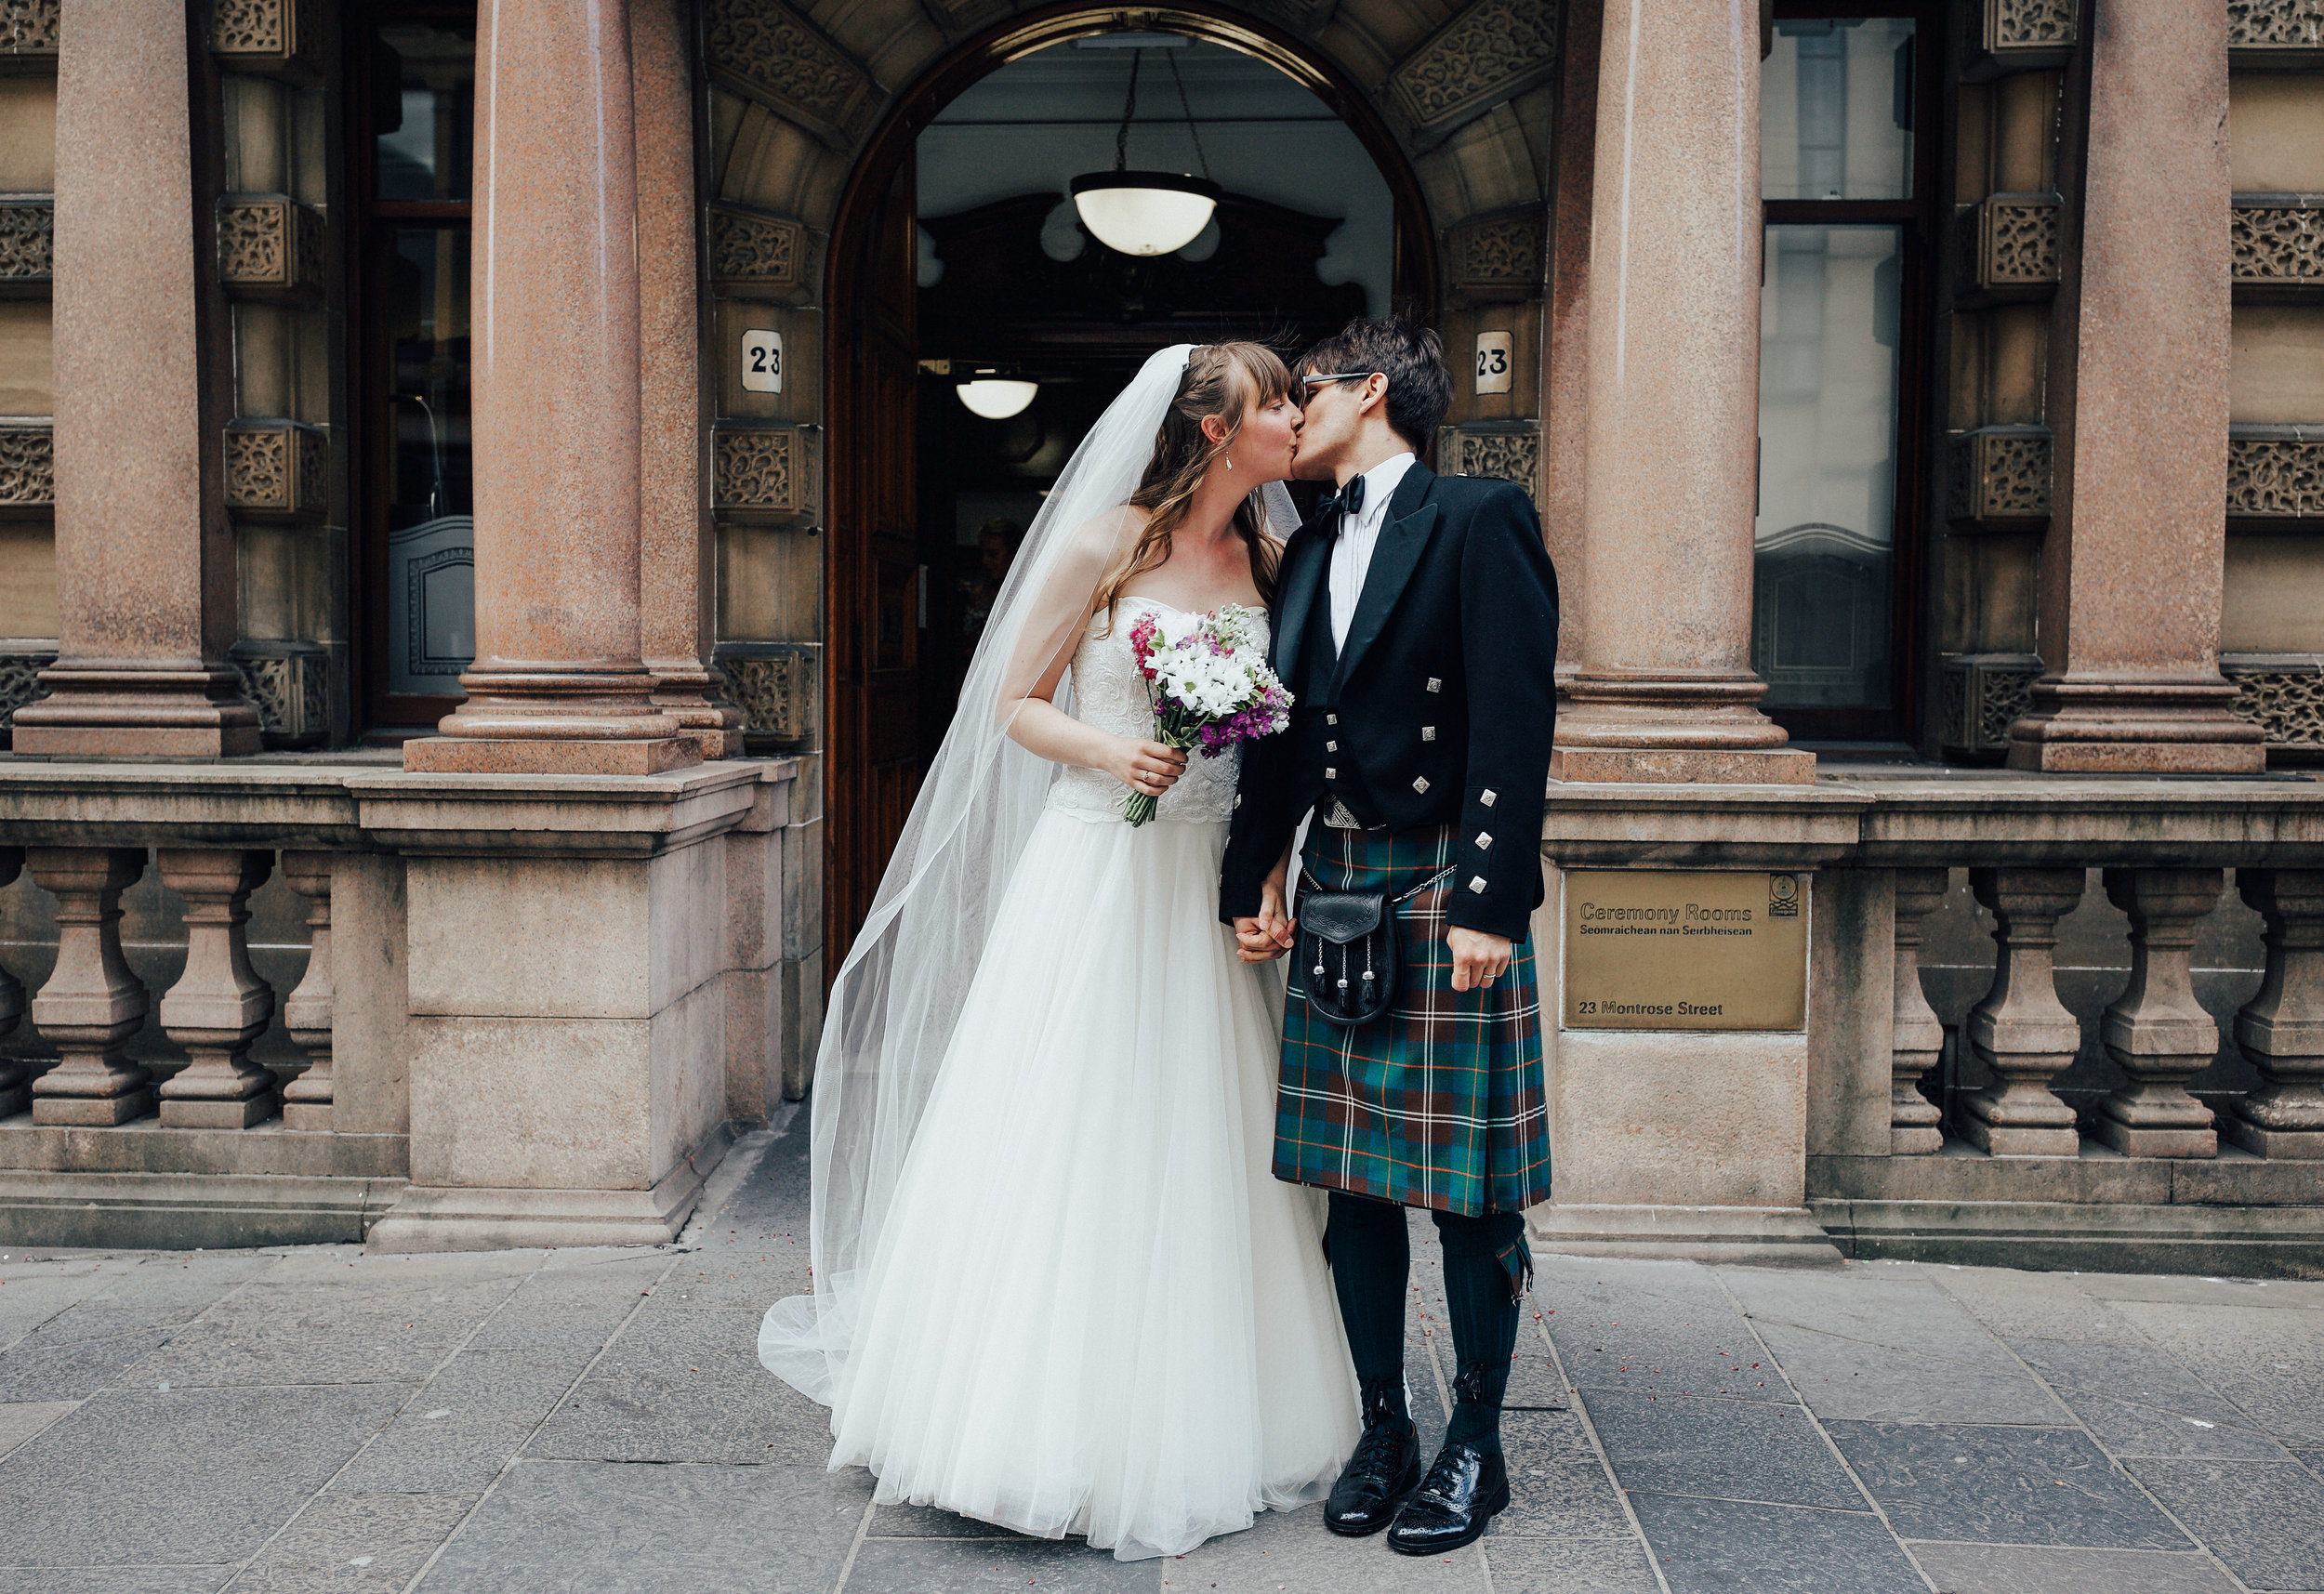 ALTERNATIVE_GLASGOW_CITY_WEDDING_PJ_PHILLIPS_PHOTOGRAPHY_WEDDING_PHOTOGRAPHY_60.jpg